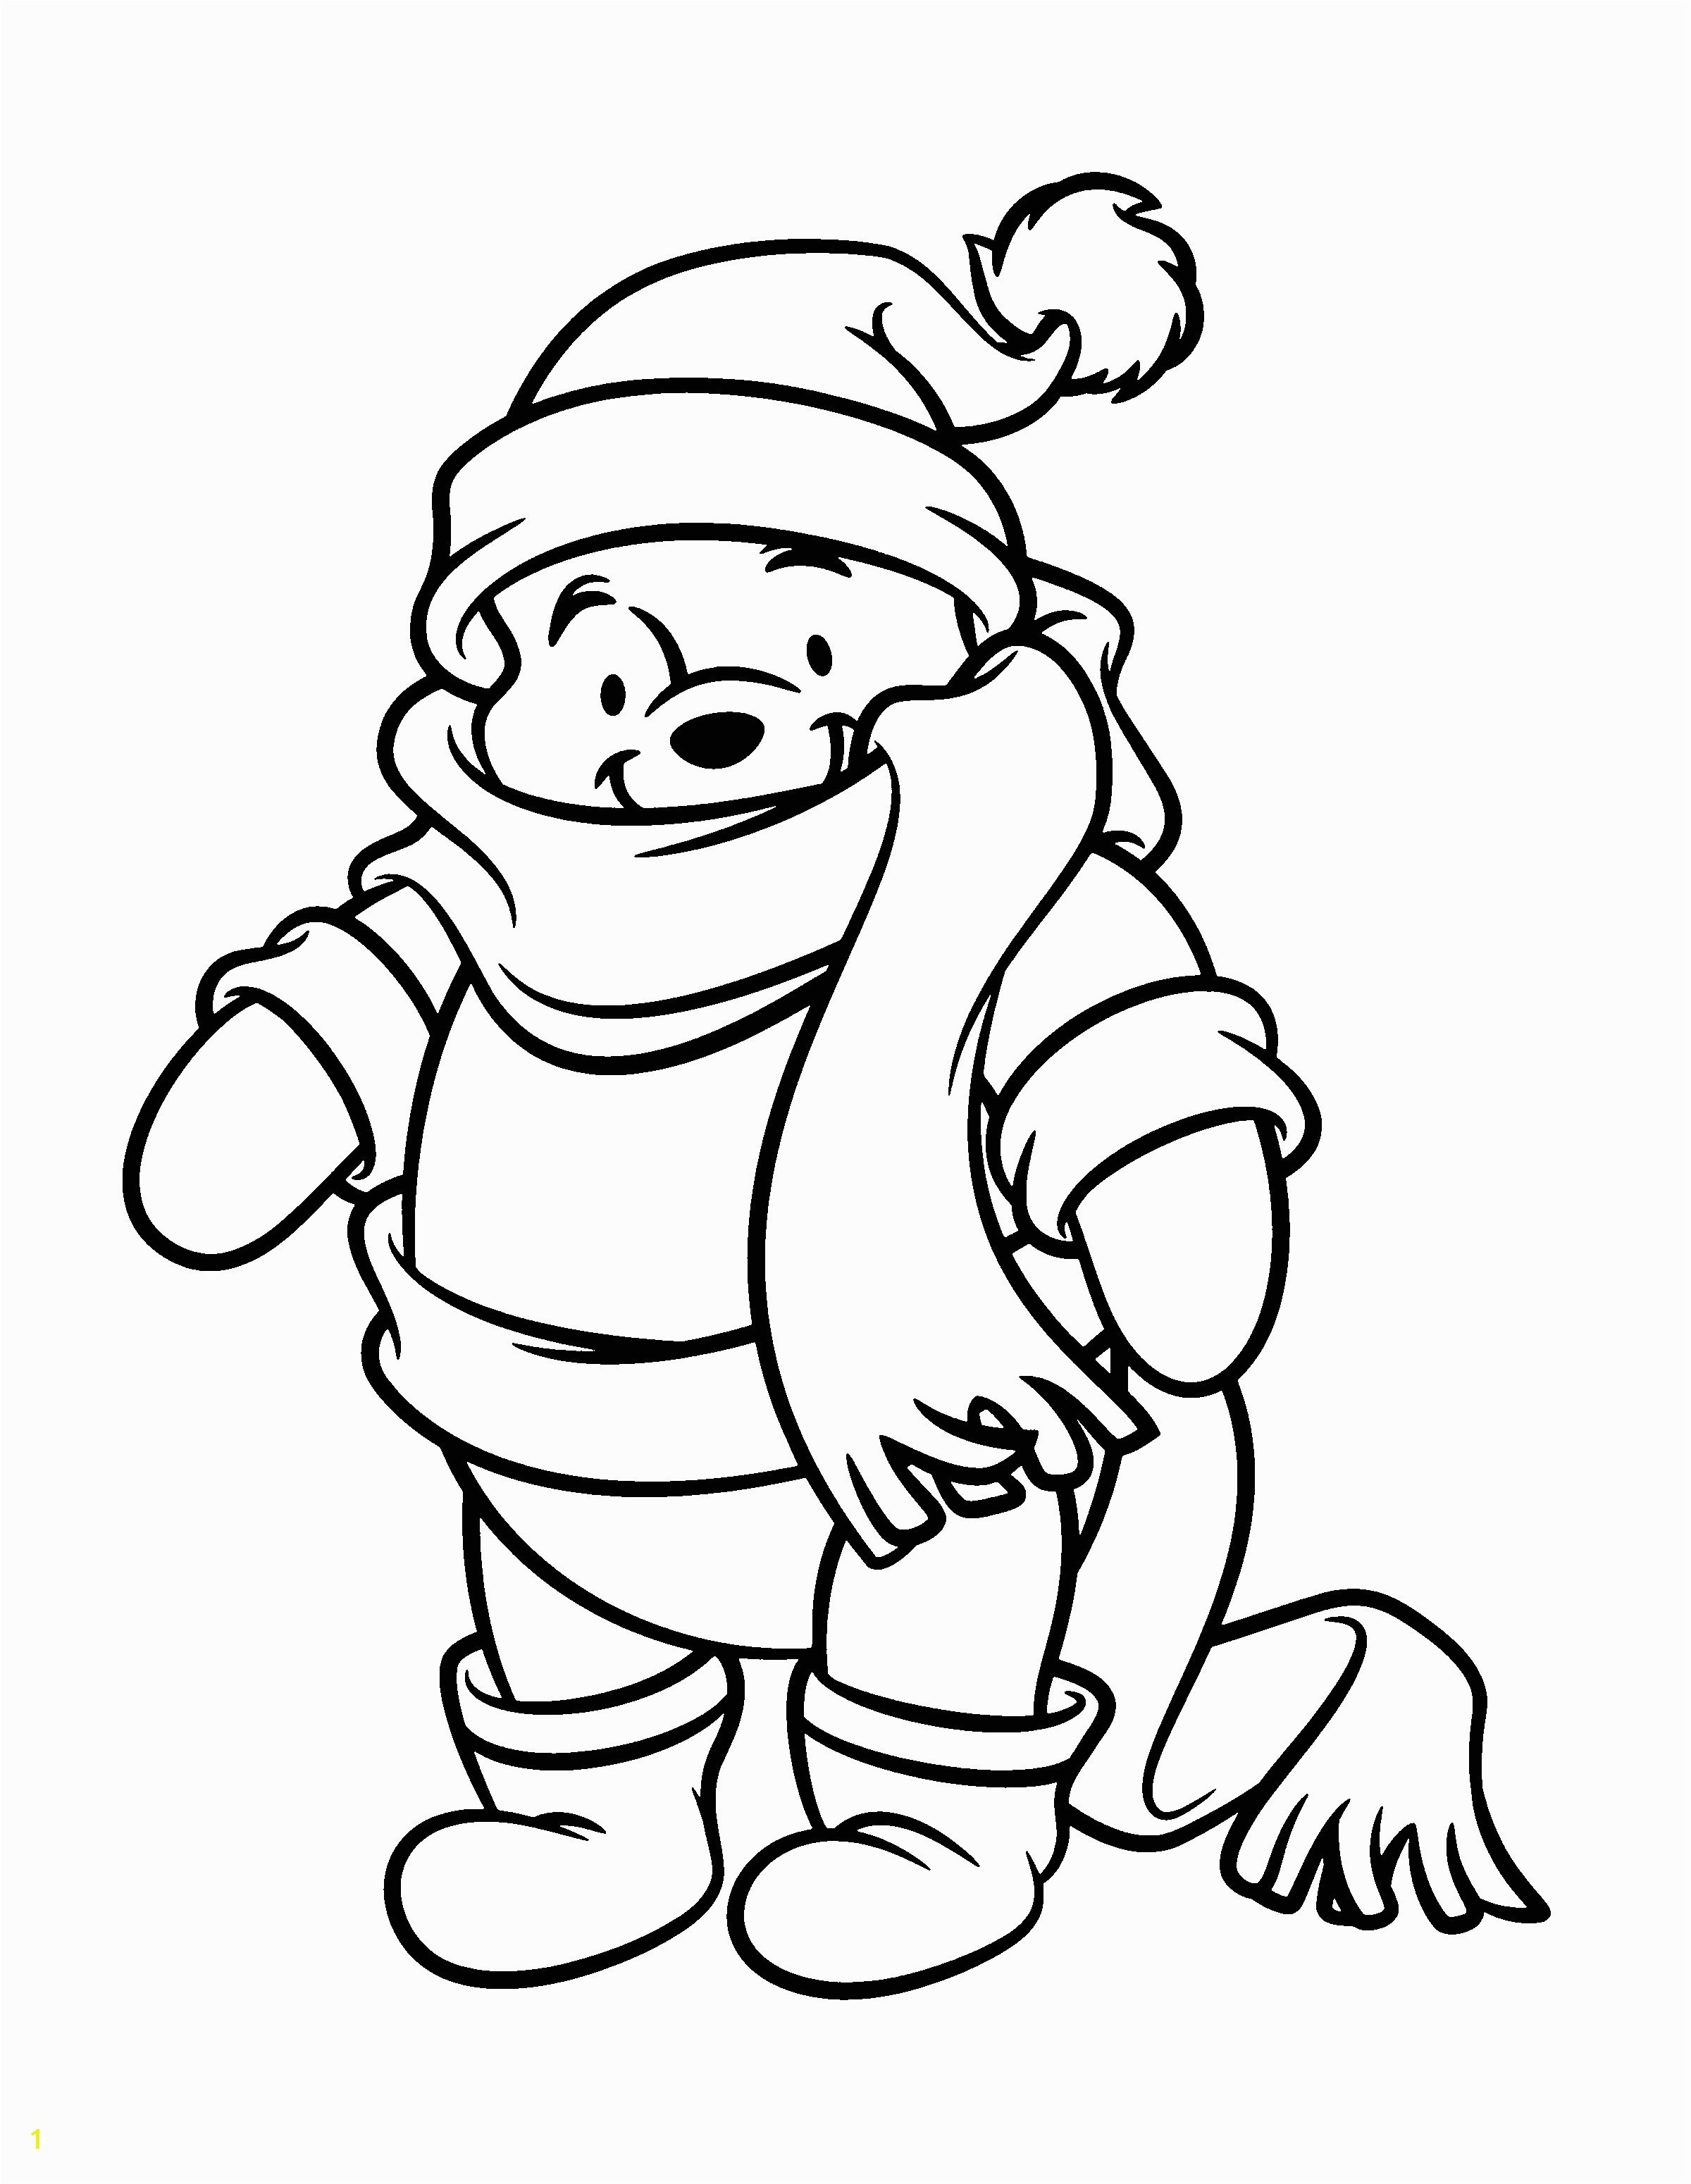 Pooh Coloring Pages Inspirational Winnie the Pooh Coloring Pages Cool Coloring Pages Pooh Coloring Pages